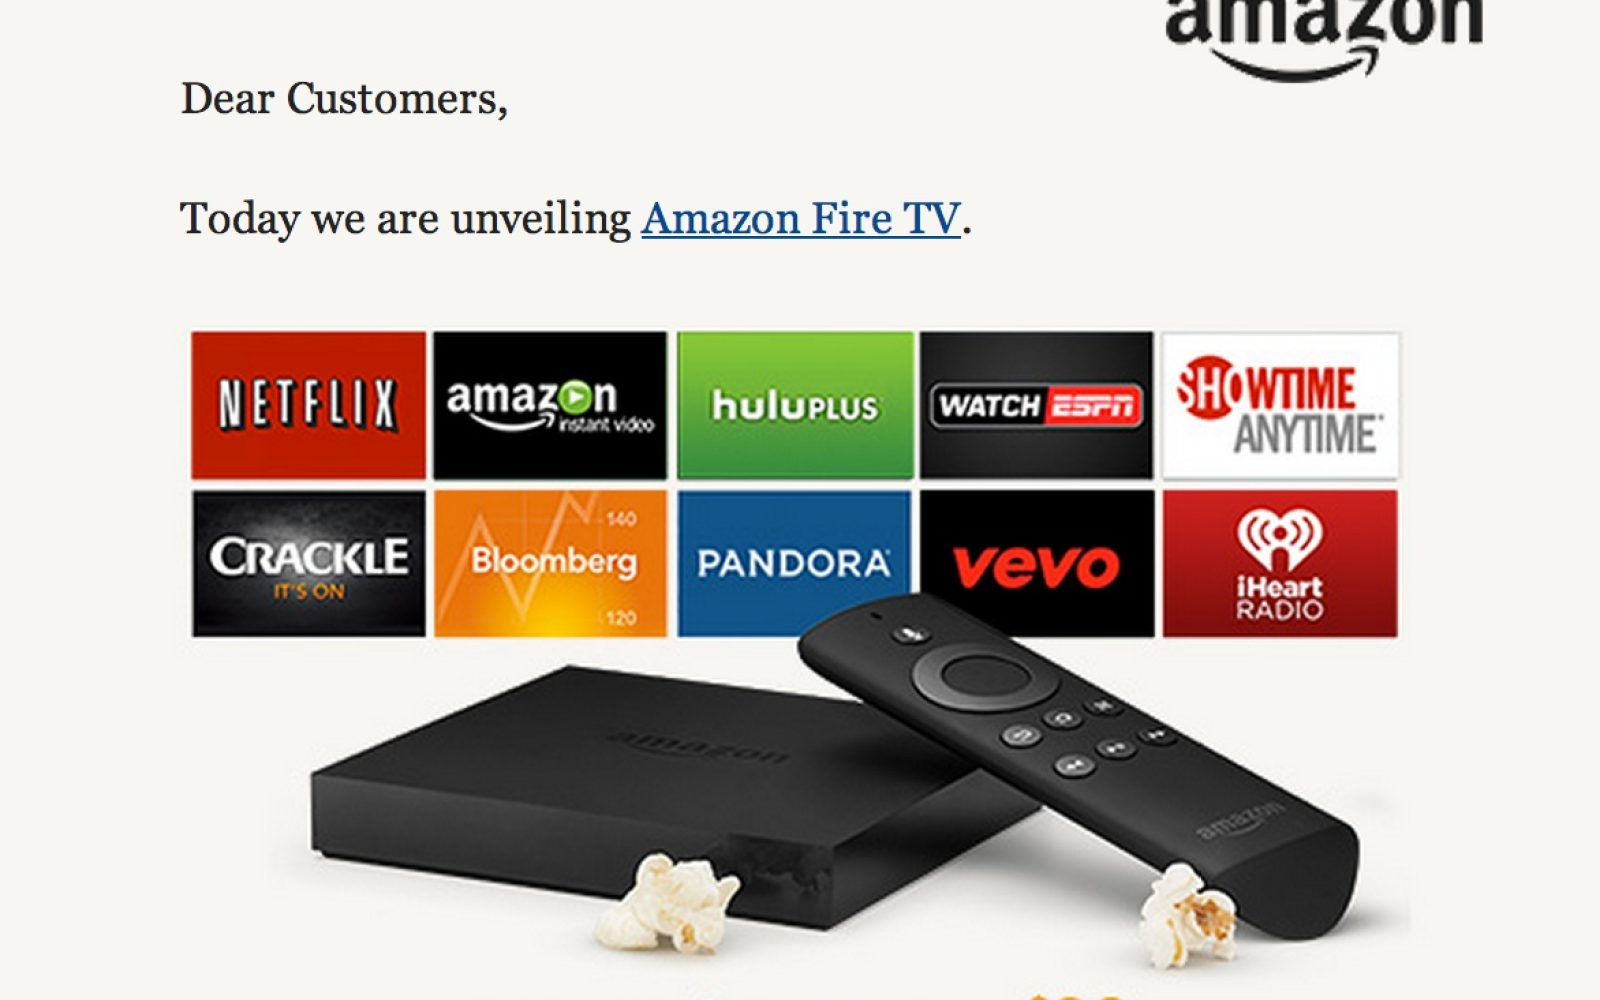 Amazon Officially Releases Amazon FireTV Today for $99 - 9to5Toys